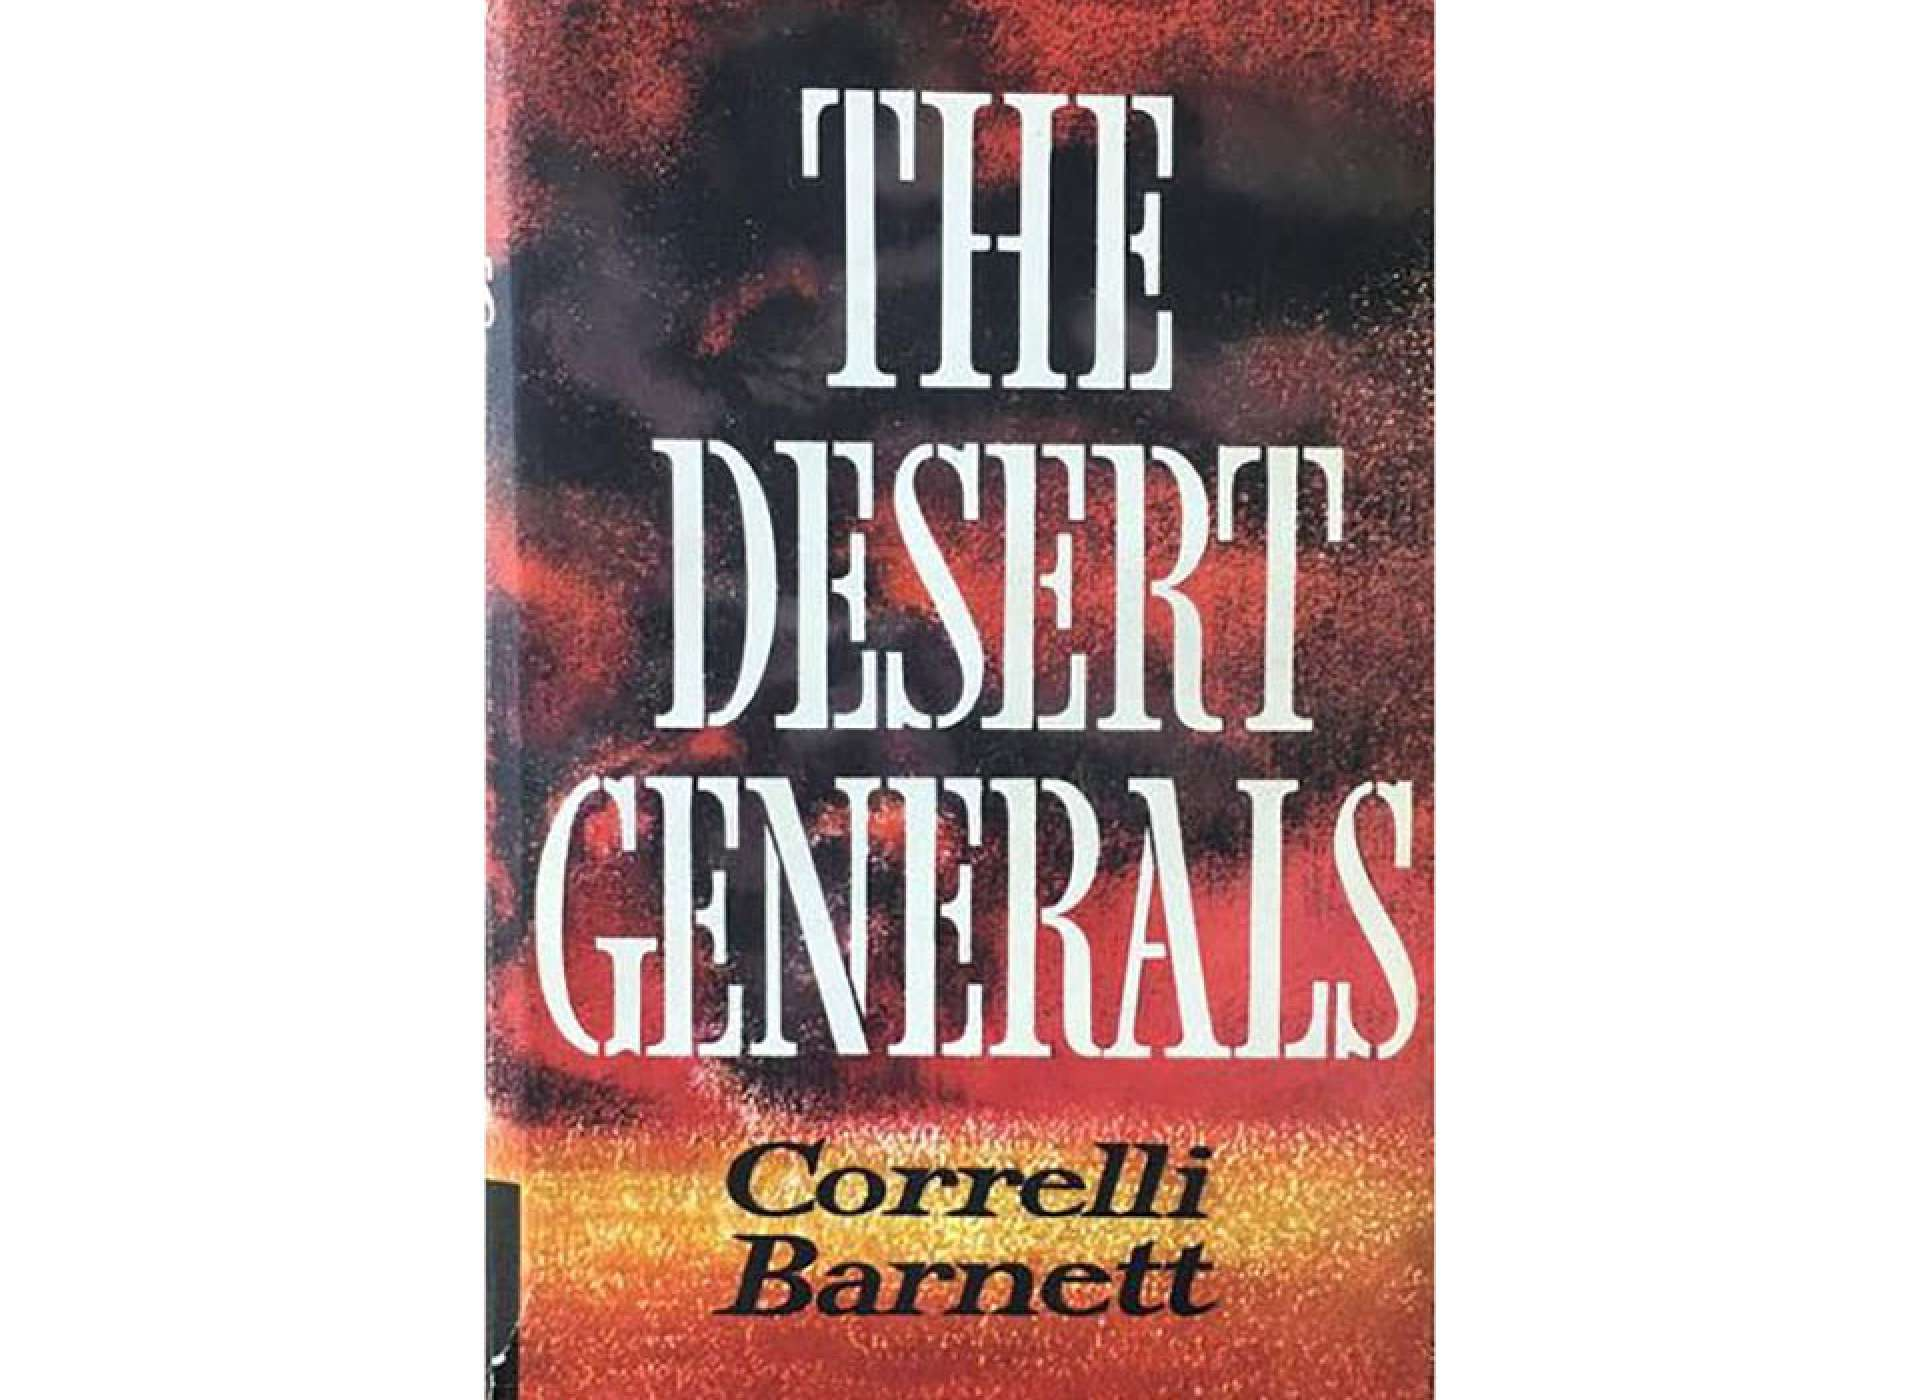 The Desert Generals. Courtesy of Amazon.com